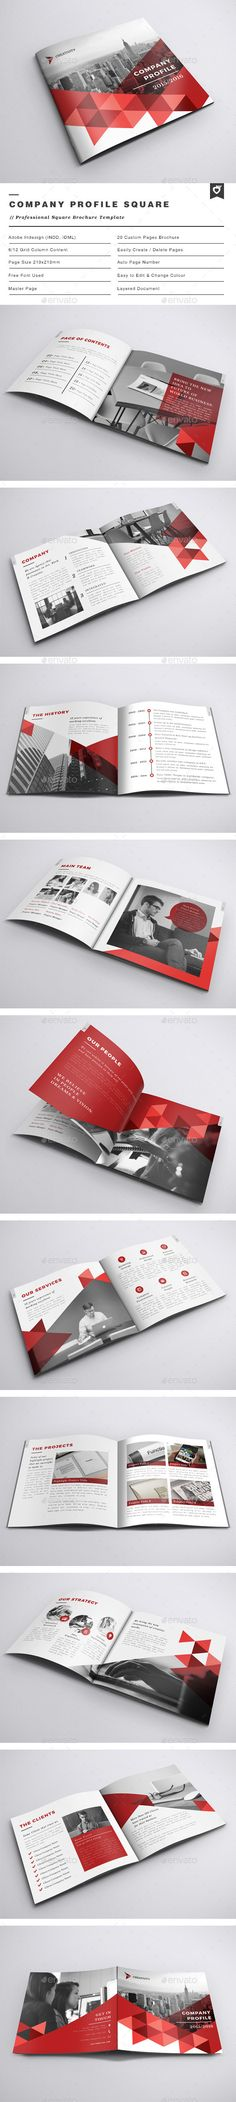 Company Profile Square Brochure on Behance